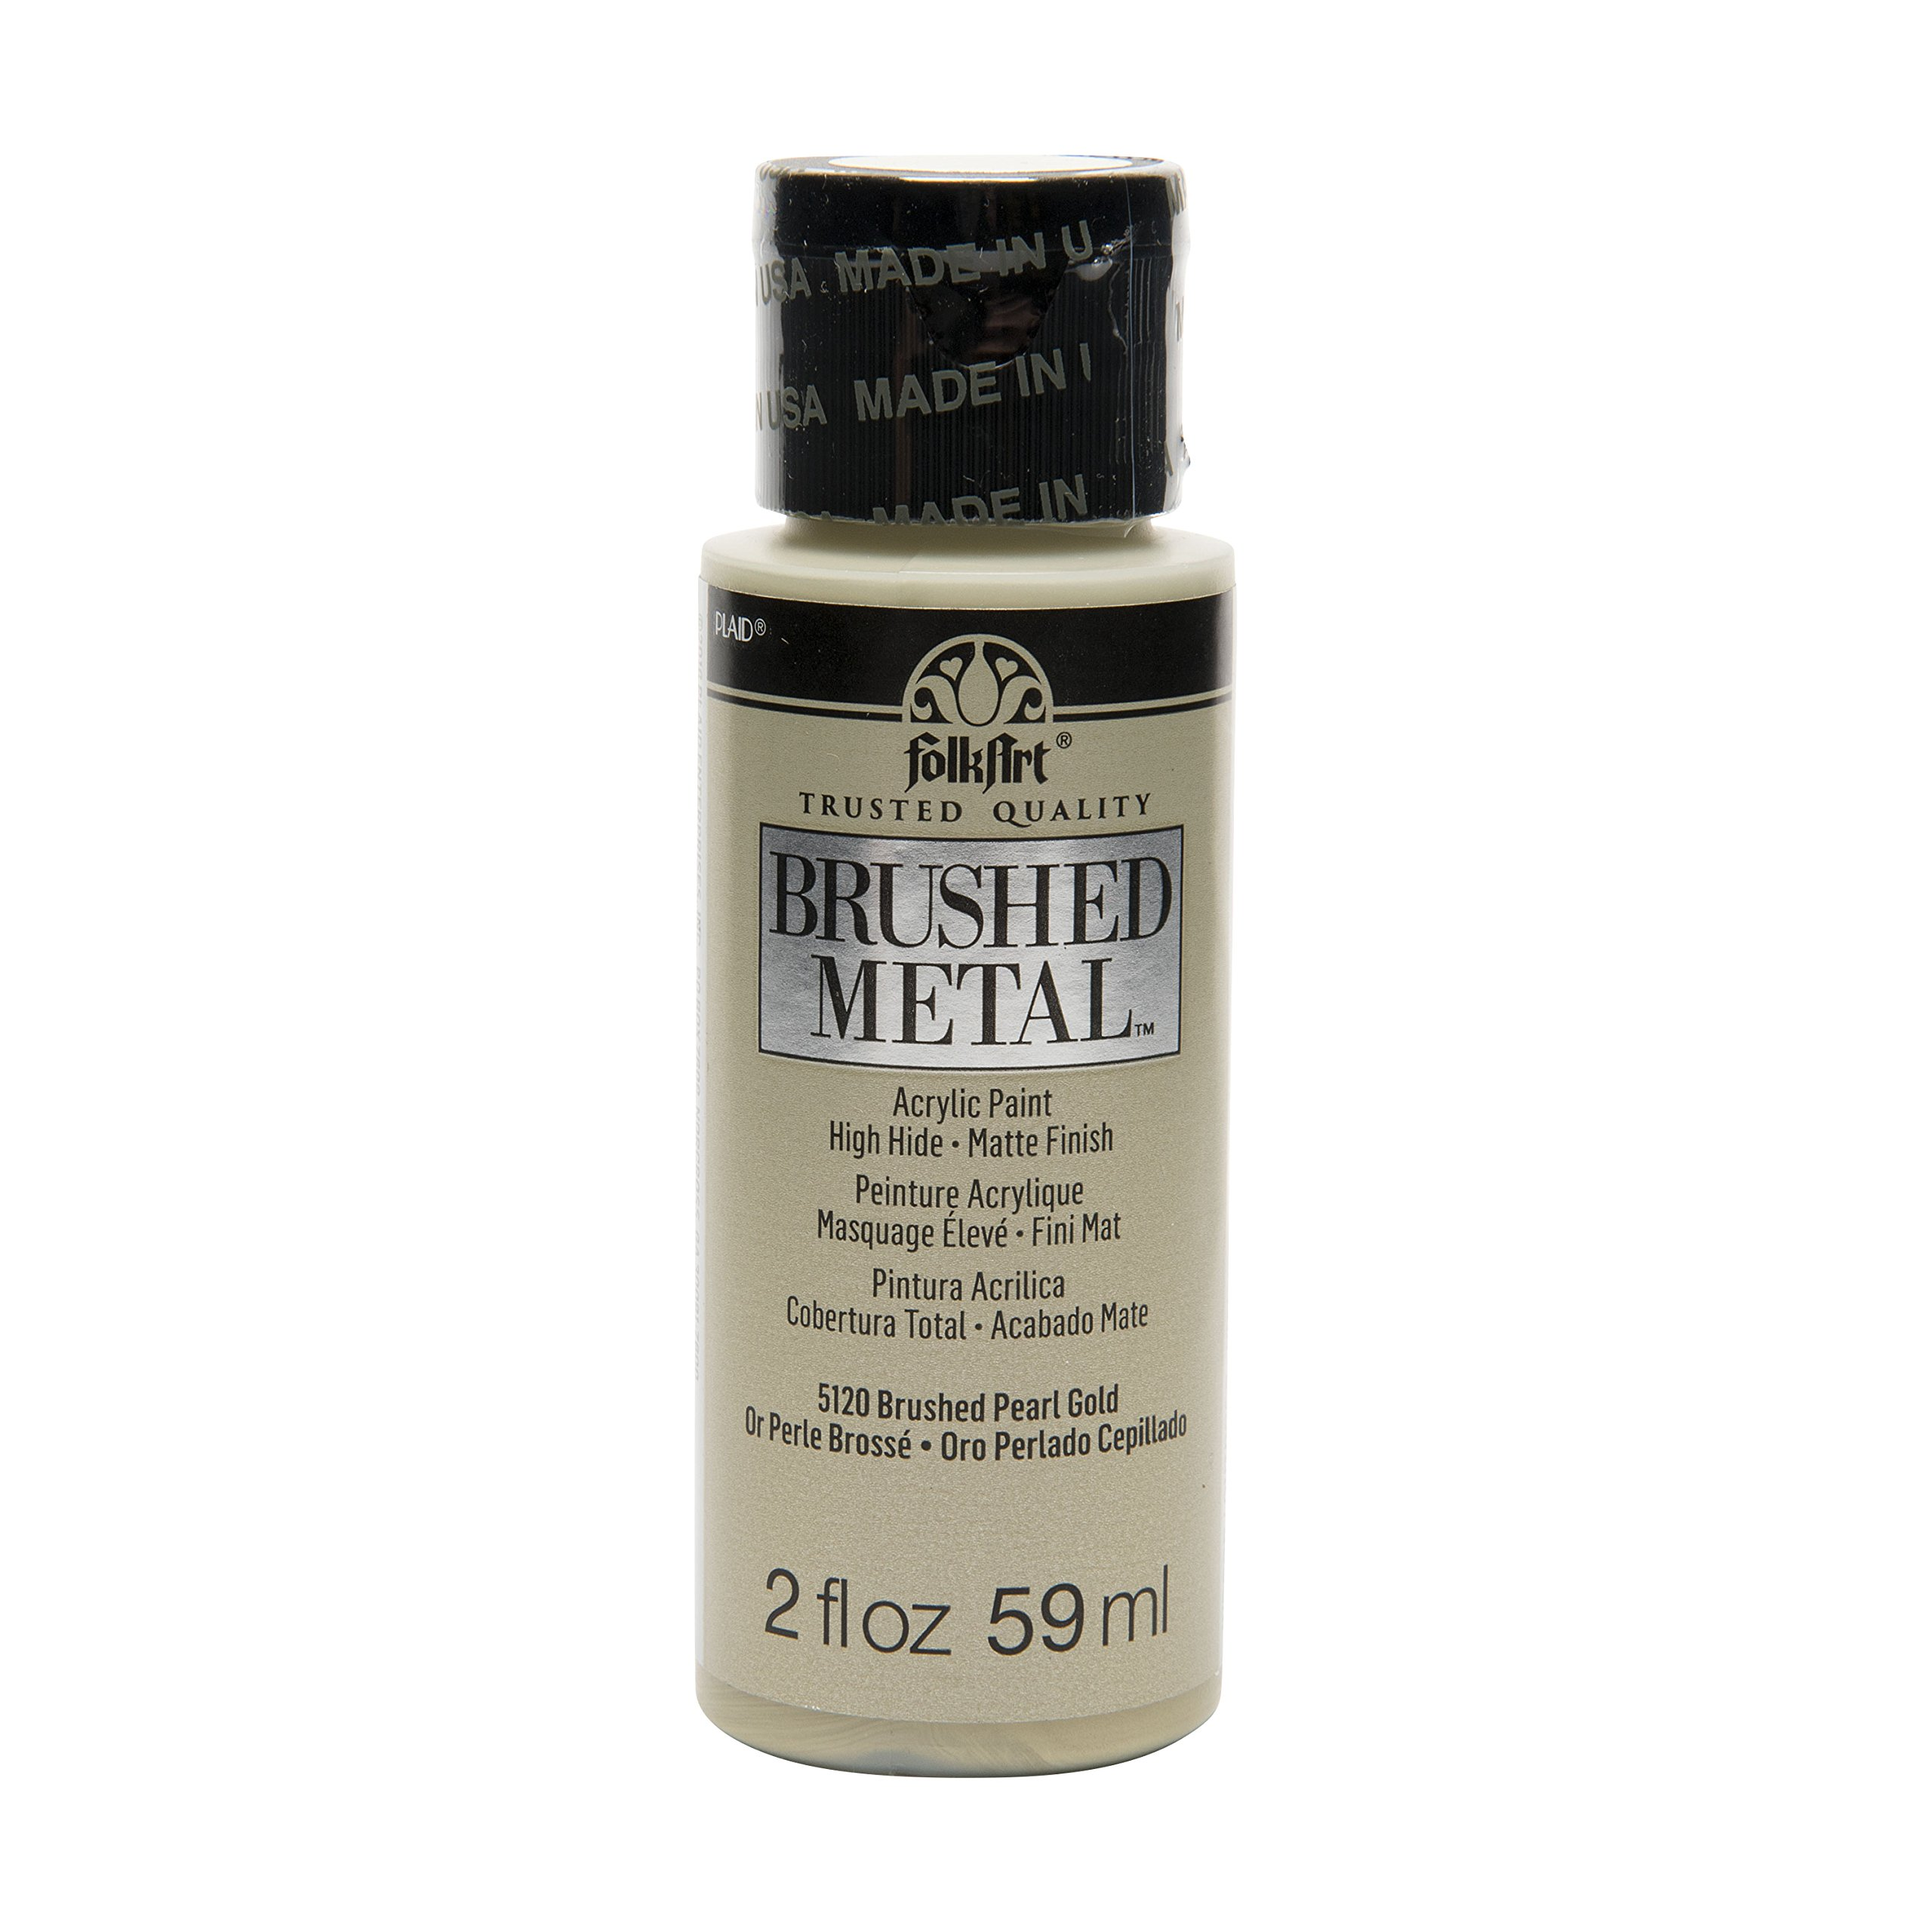 FolkArt Brushed Metal Paint in Assorted Colors (2 oz), 5120 Pearl Gold